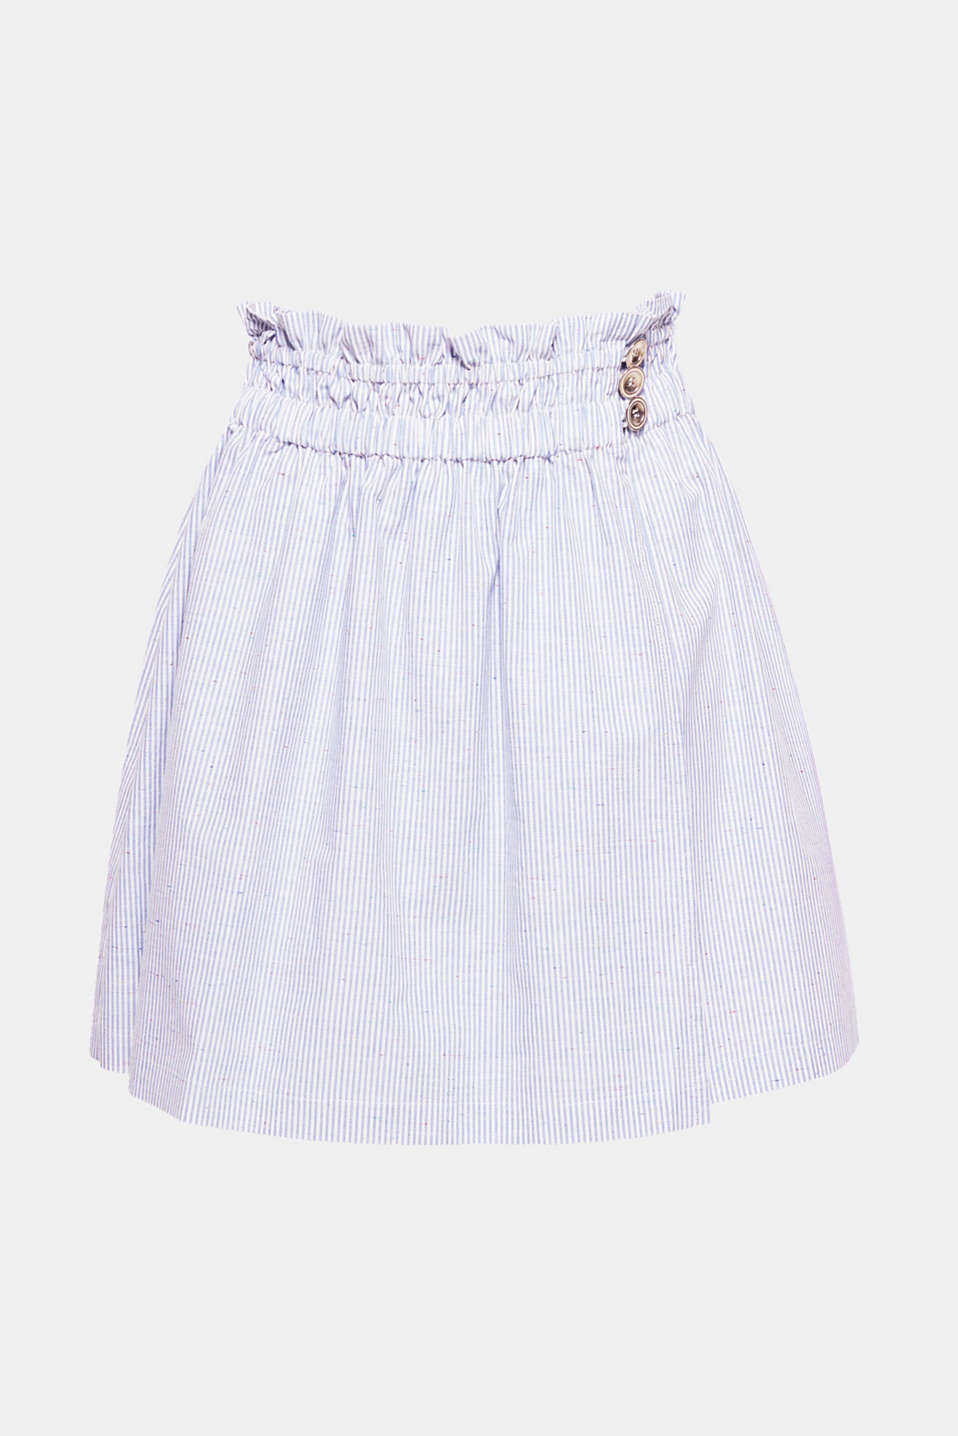 The nautical stripes and the wrap-over look with a distinctive button placket give this woven skirt its unique charm.